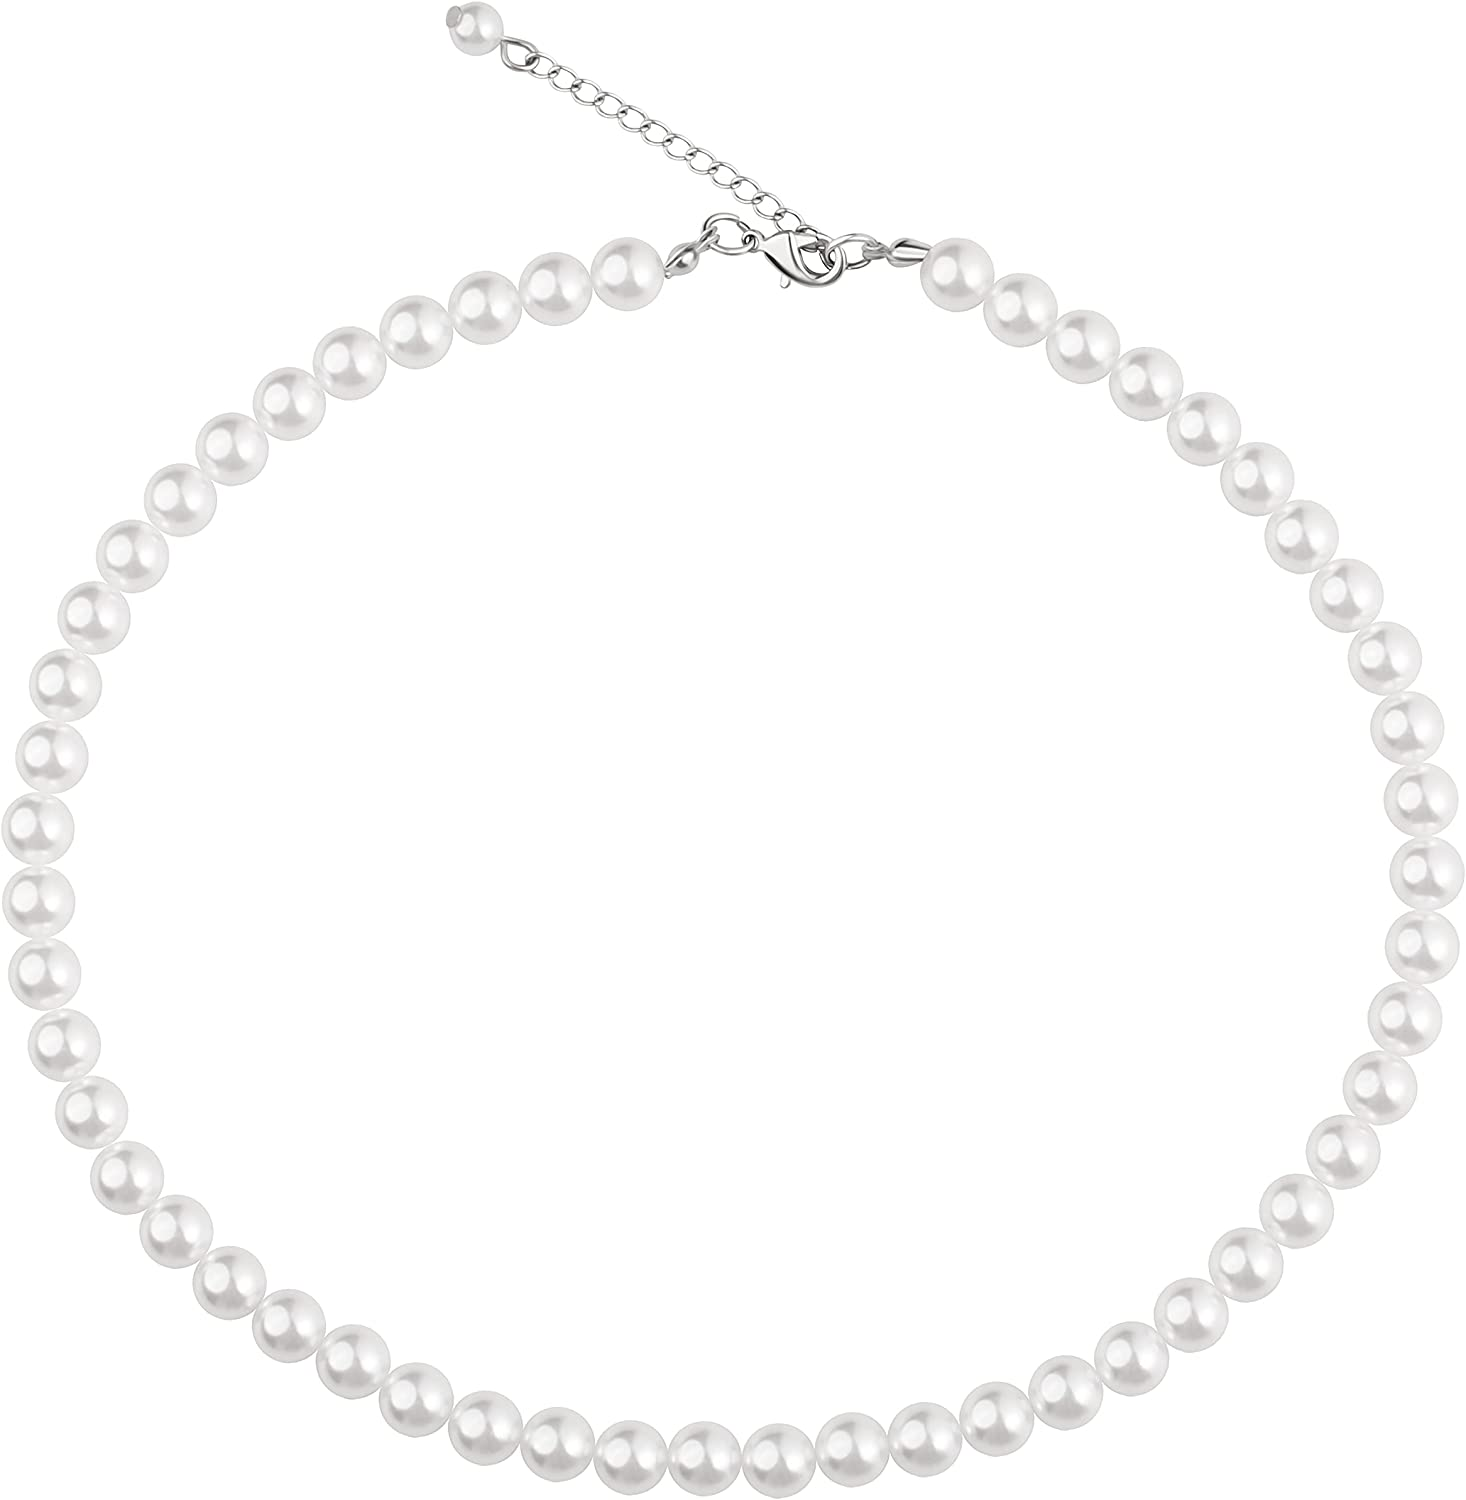 WELLKAGE Imitation Pearl Necklace Wedding Pearl Necklace for Women